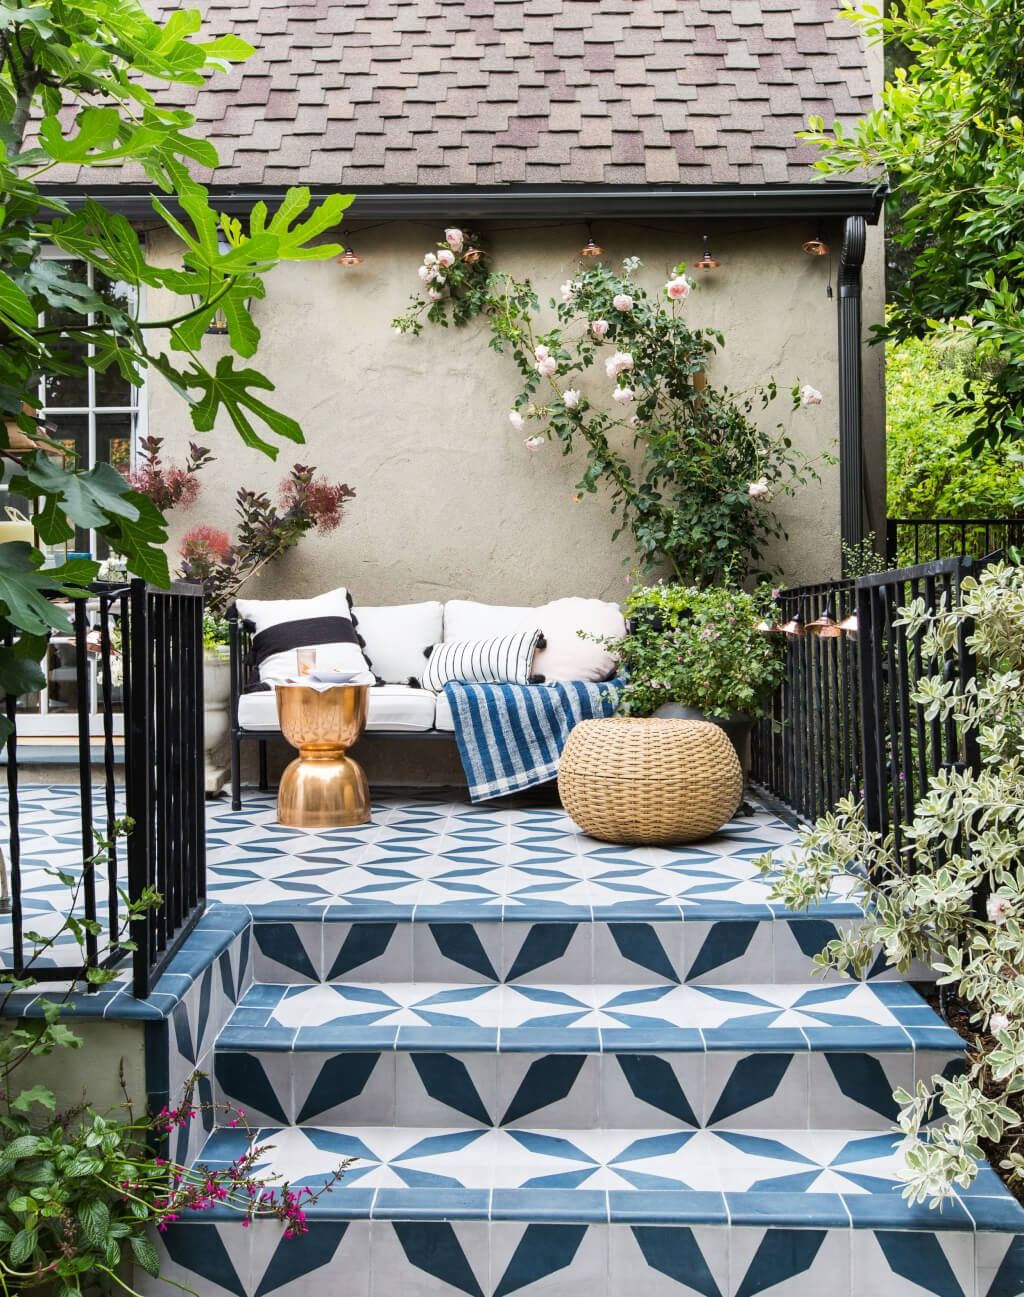 Tapis Exterieur Terrasse Colorée 8 Ways To Turn Your Outdoor Space Into A Backyard Retreat